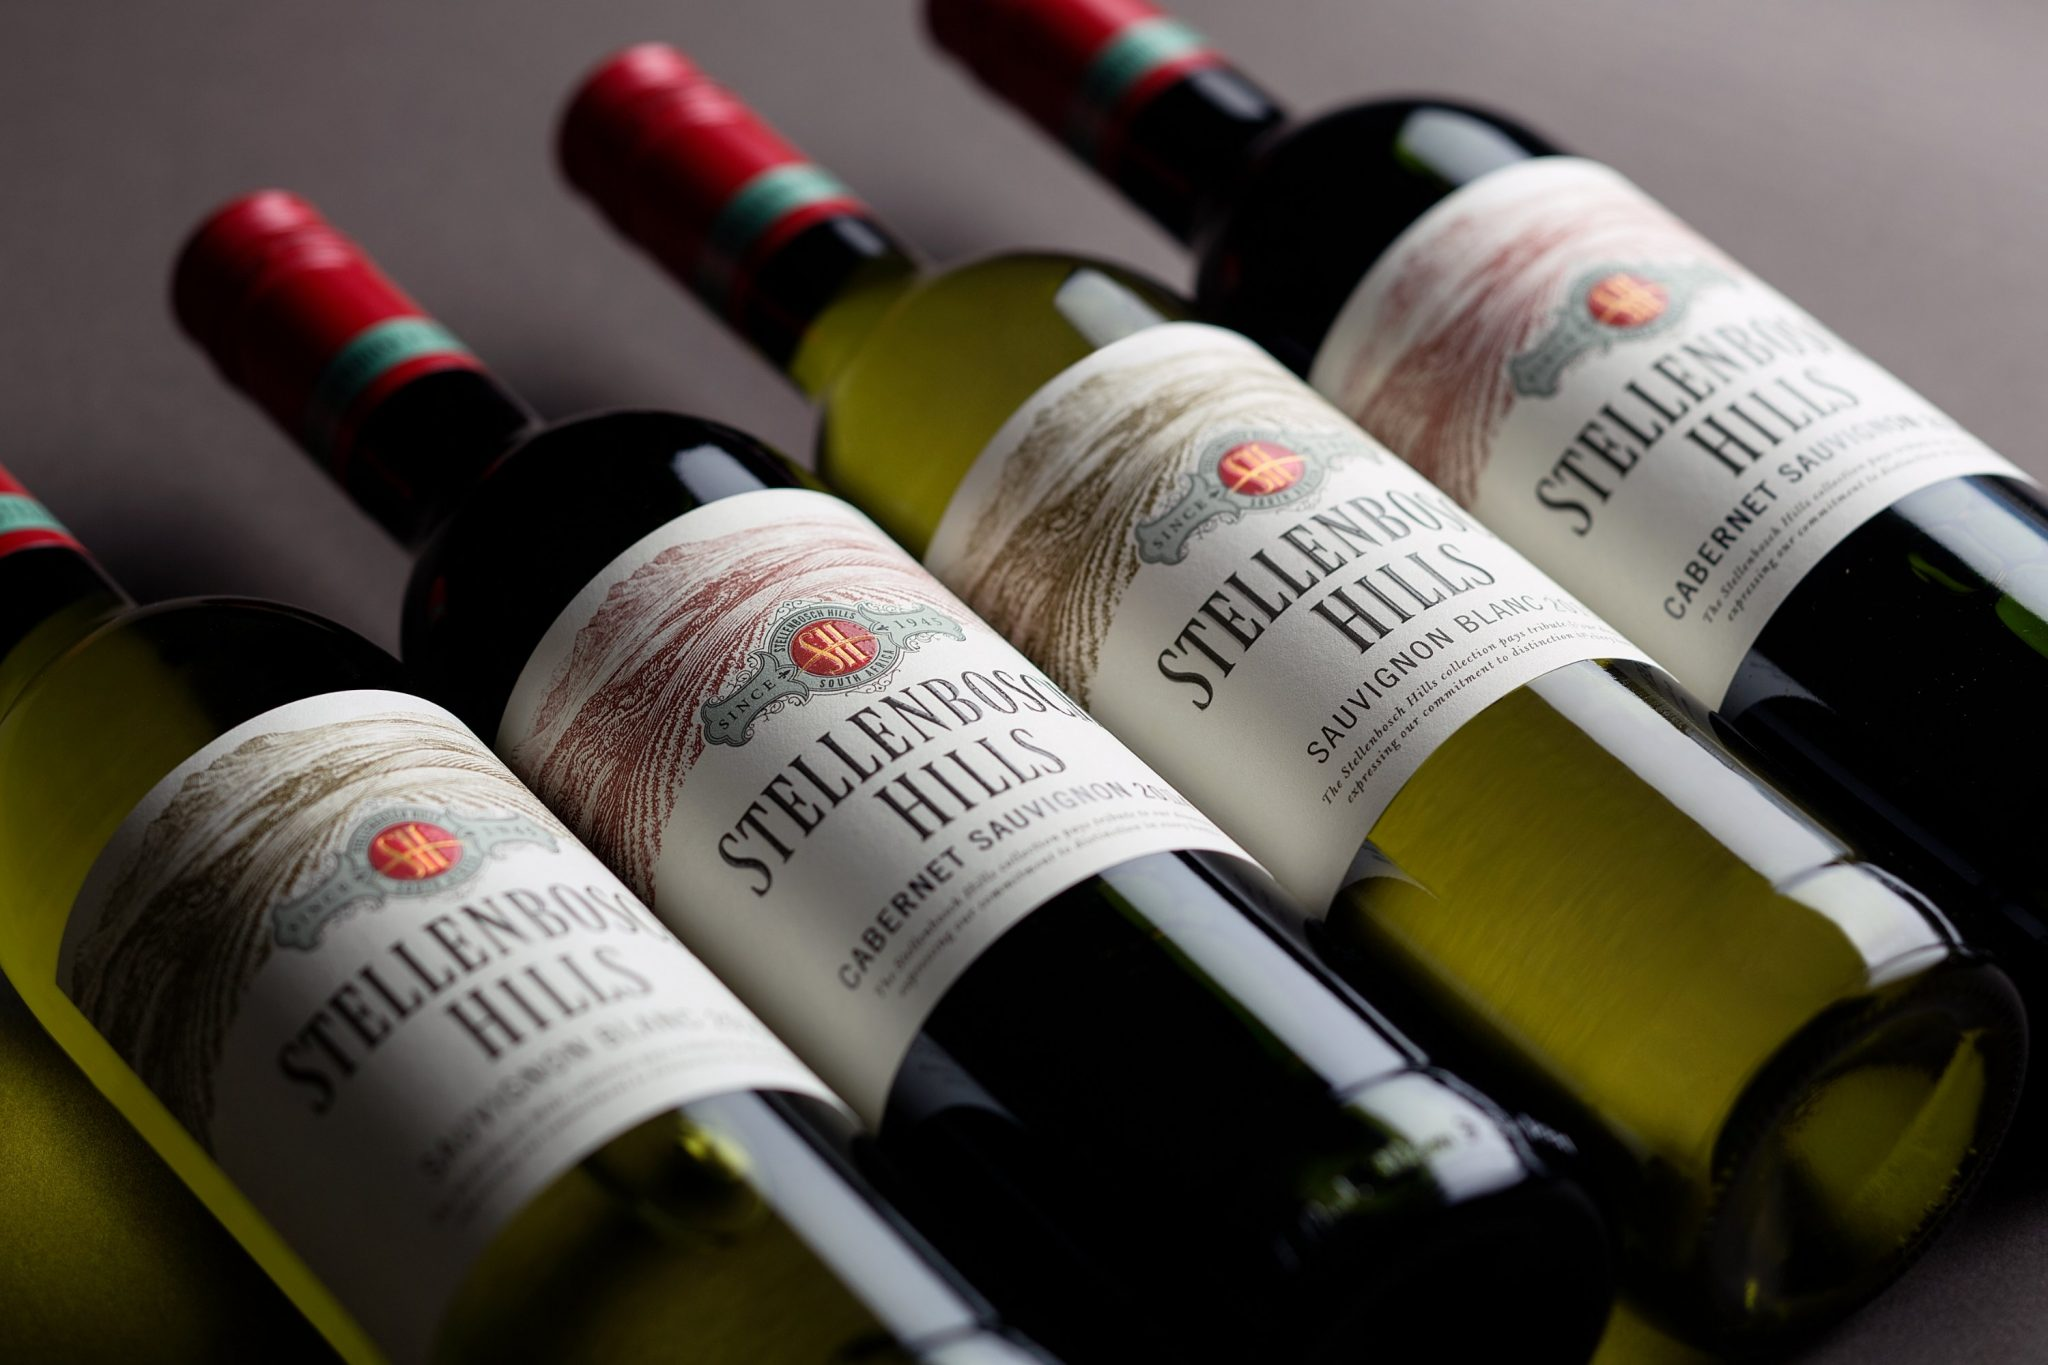 sbh wines selection sonia cabano blog eatdrinkcapetown